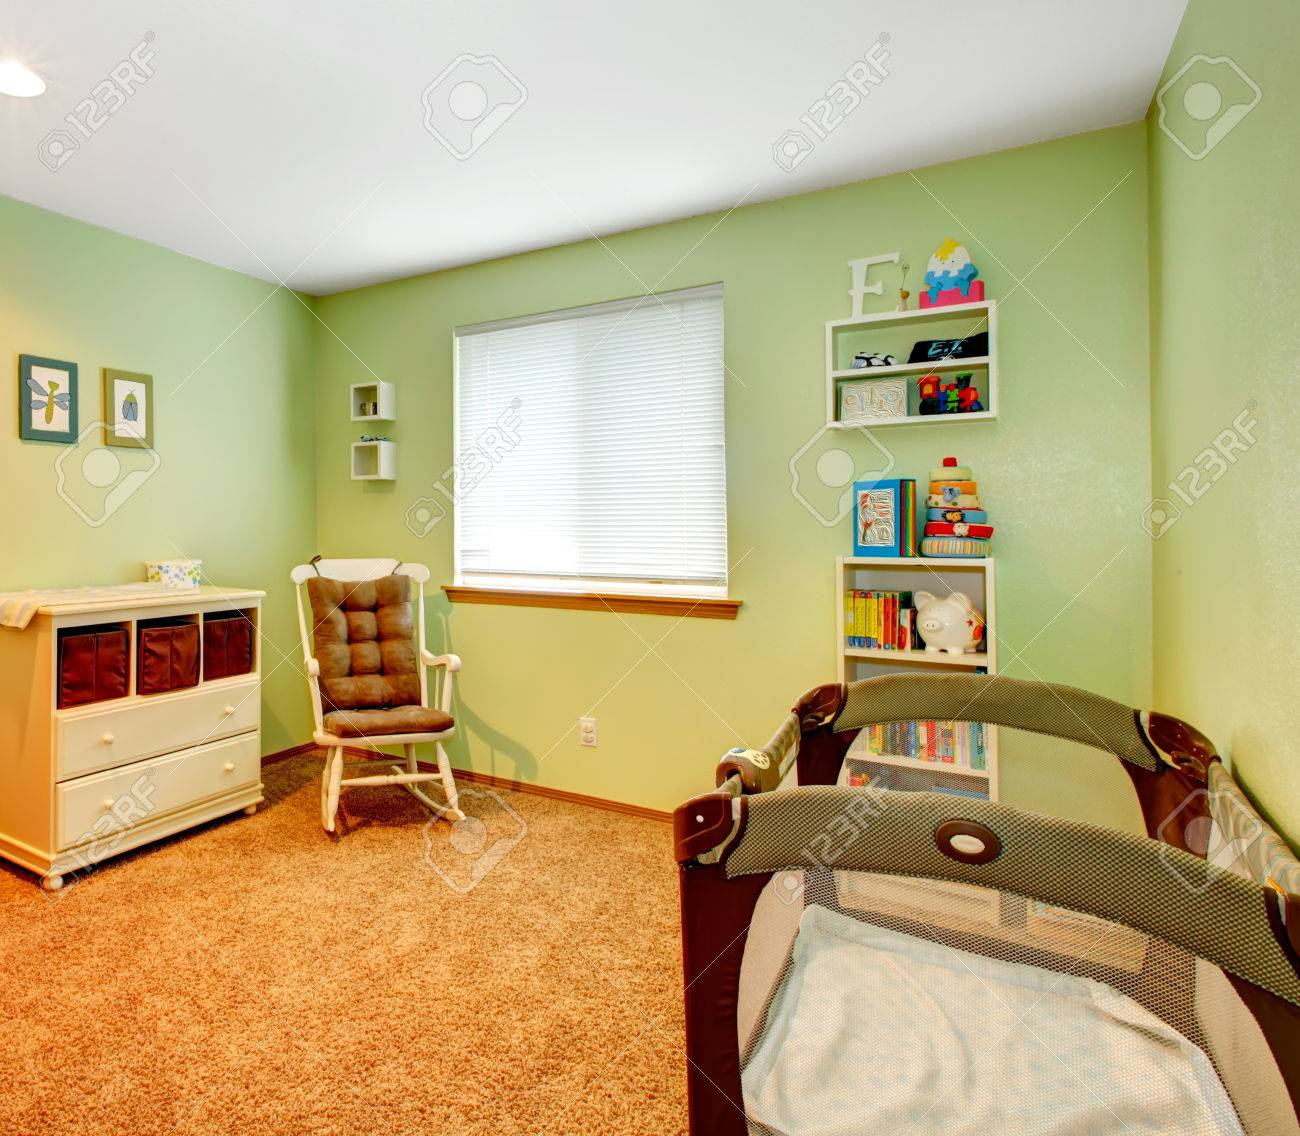 Baby cribs green - Green And Beige Cozy Nursery Room With Baby Crib Rocking Chair And Wooden Cabinet Stock